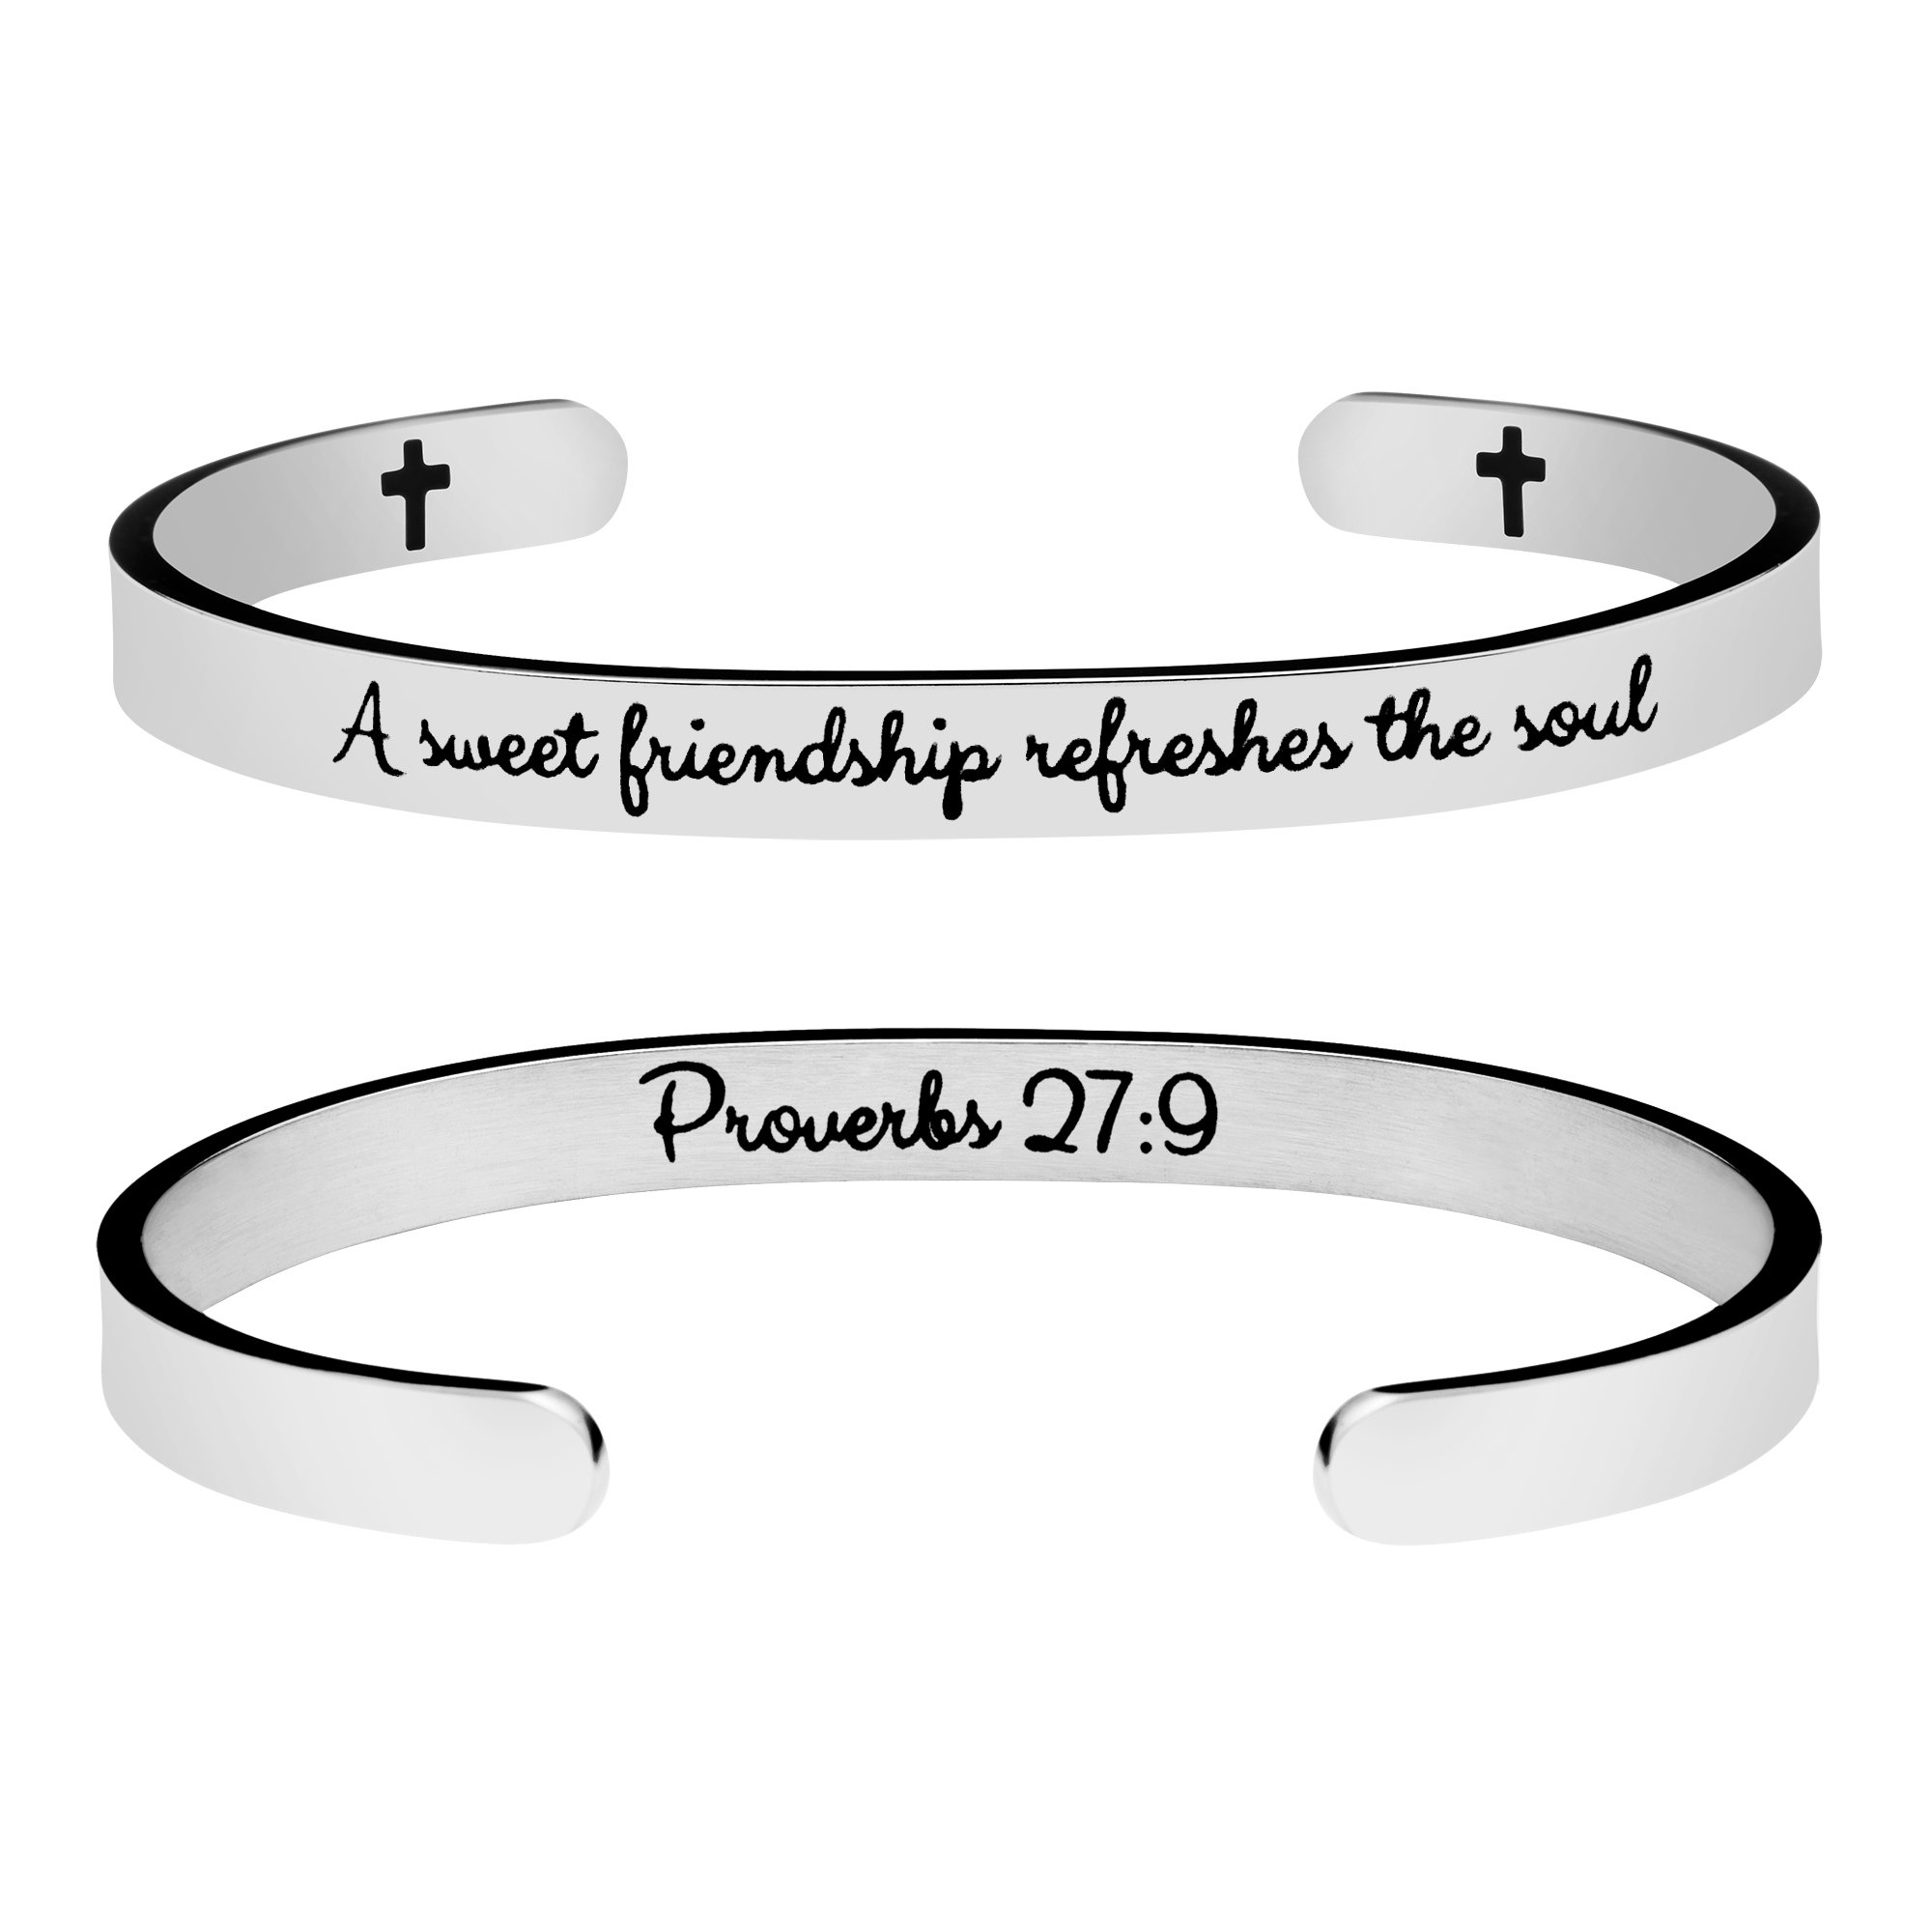 Yiyang Bracelet for Friends Inspirational Cuff Bangle Stainless Steel Jewelry Gift Mantra A Sweet Friendship Refresh the Soul